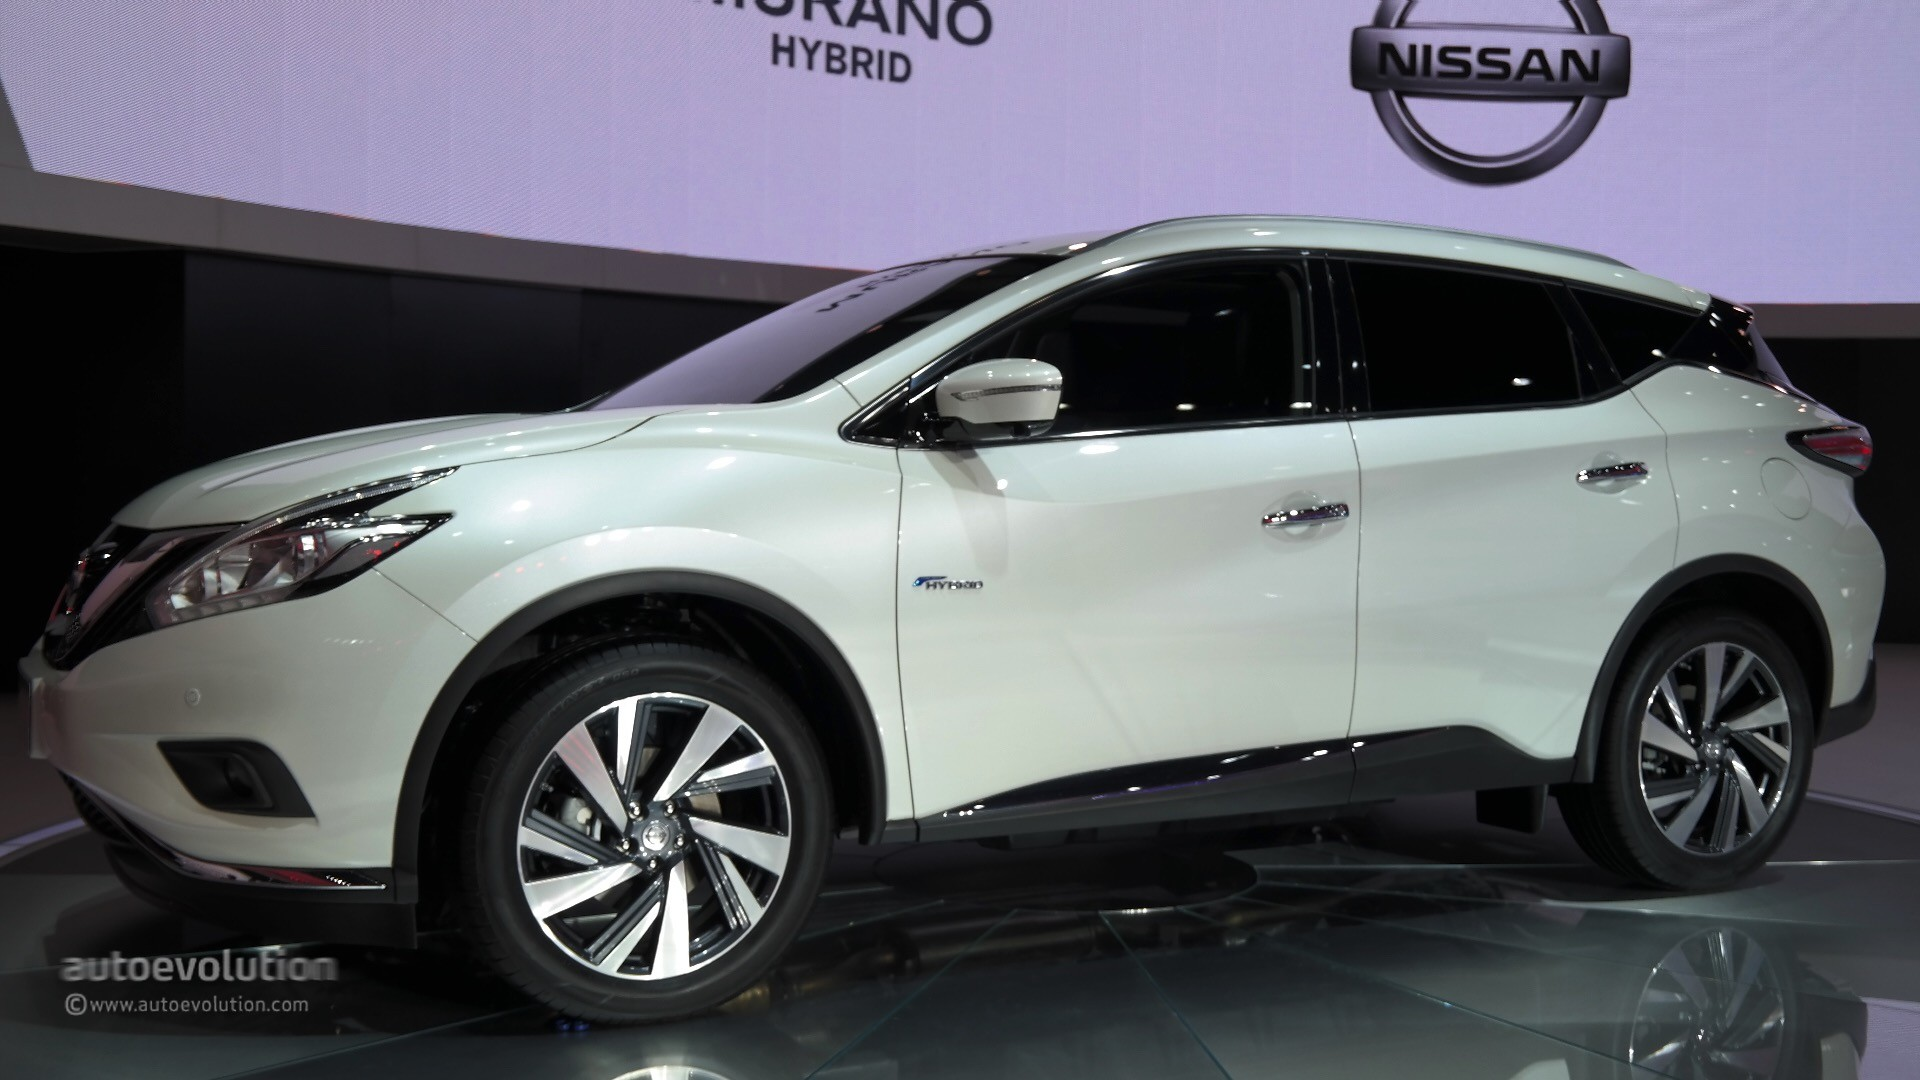 World Premiere For 2016 Nissan Murano Hybrid At Auto